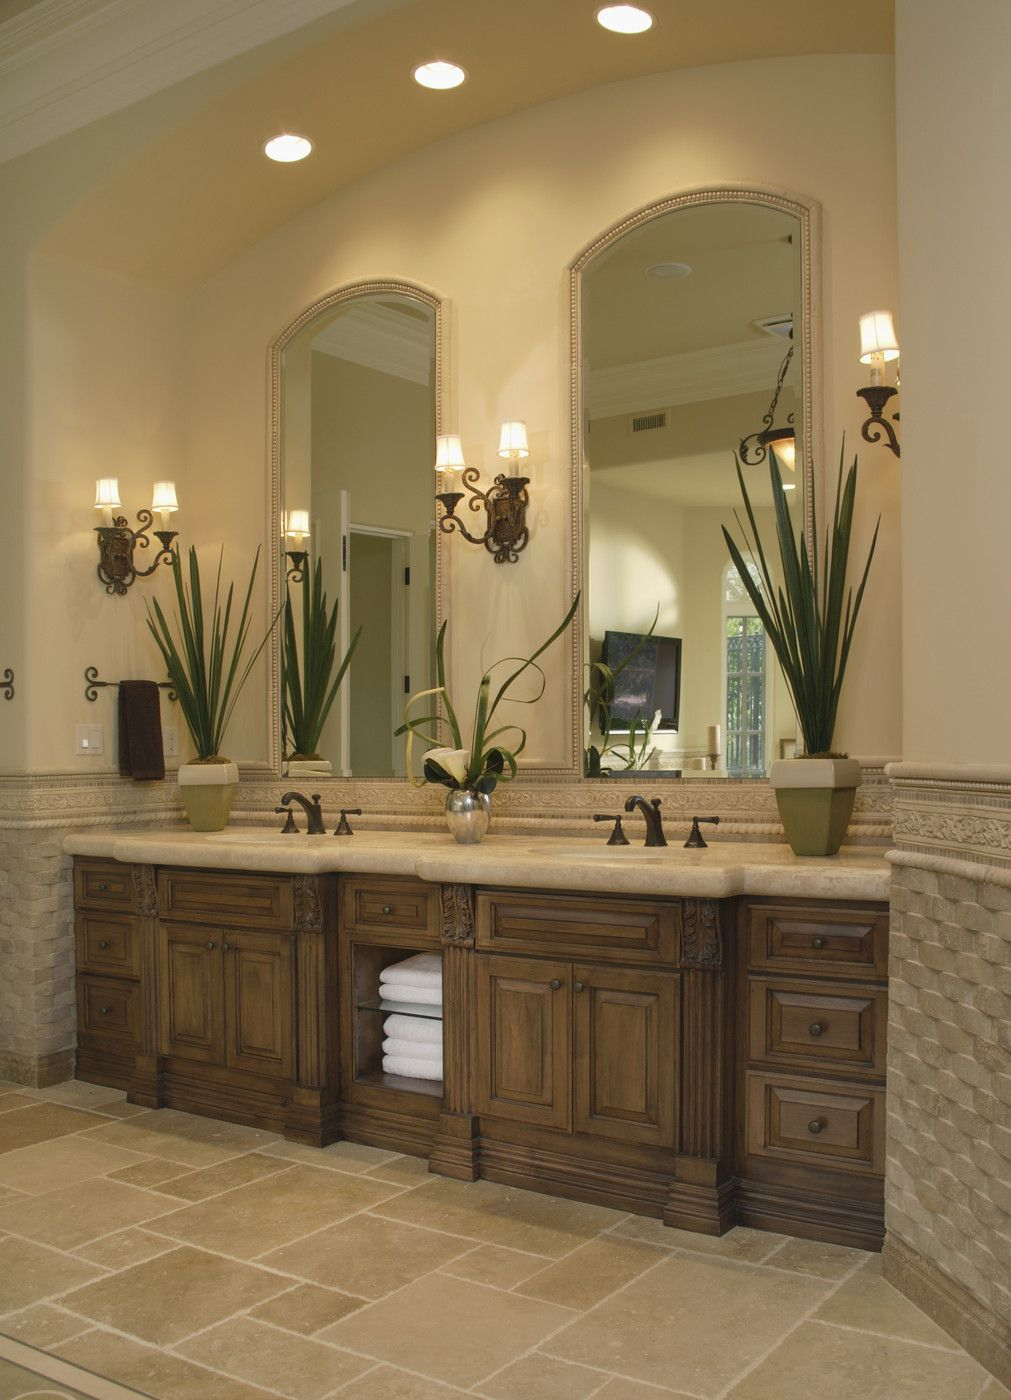 Rise and shine bathroom vanity lighting tips light up the area evenly aloadofball Gallery